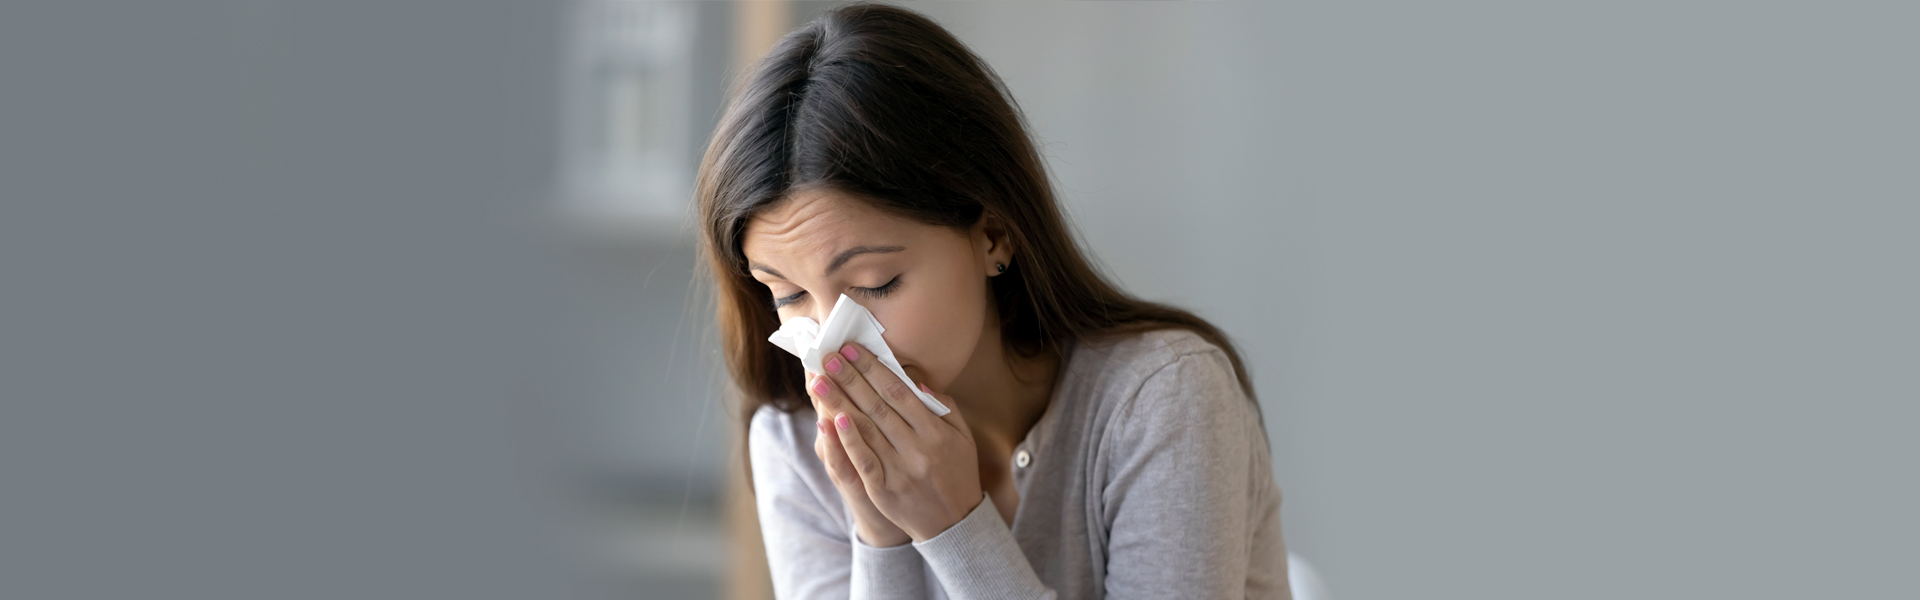 Cold Vs. Flu: What The Major Differences?